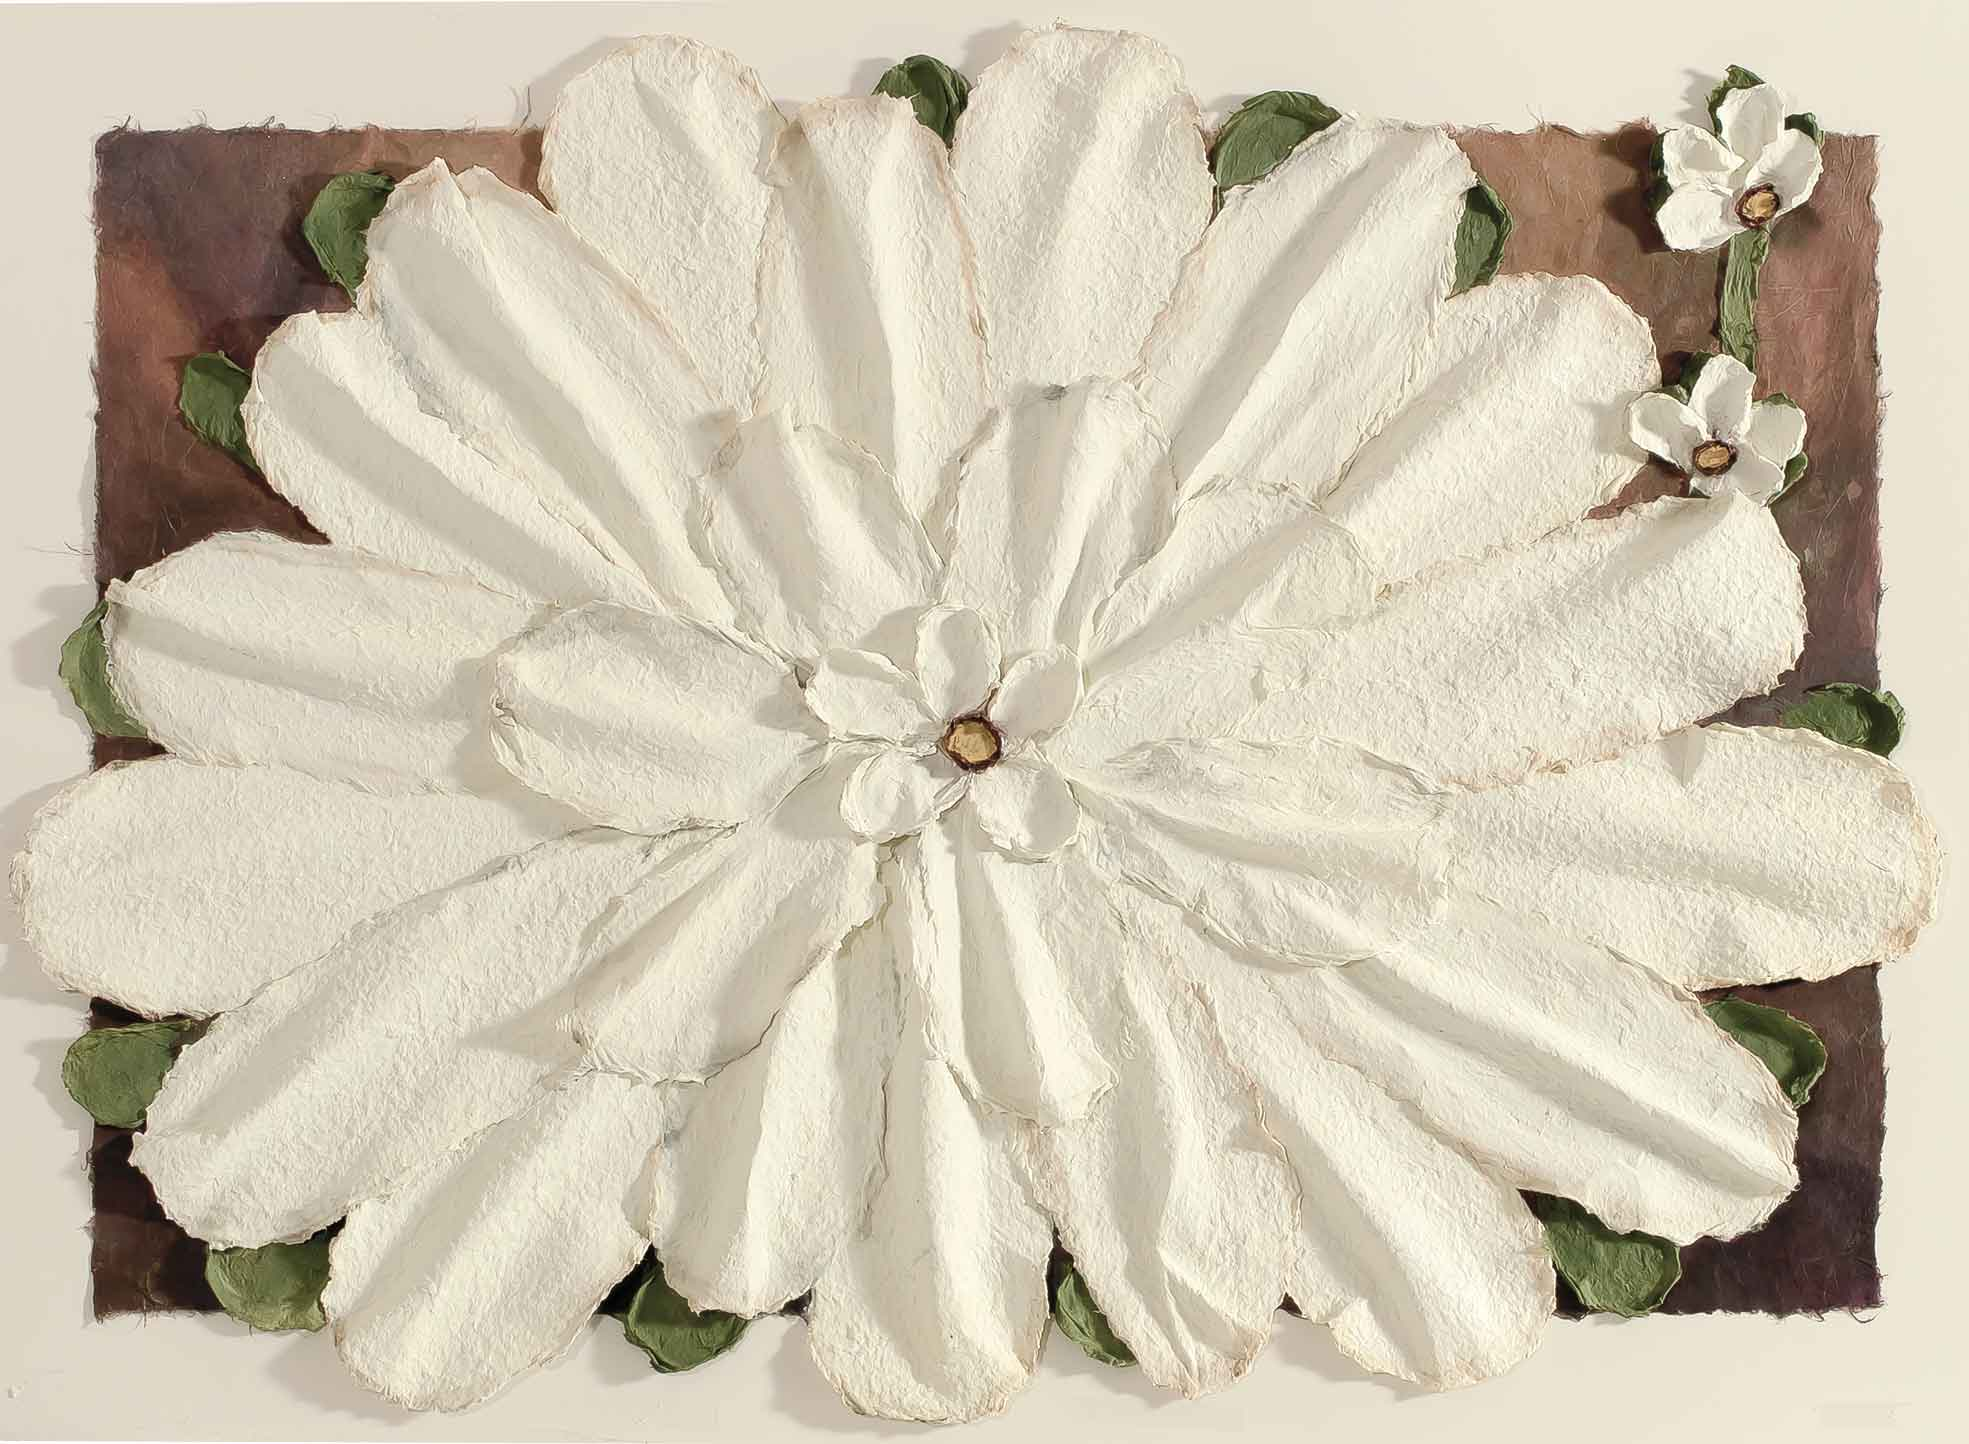 Large White Casted Flower 11x14